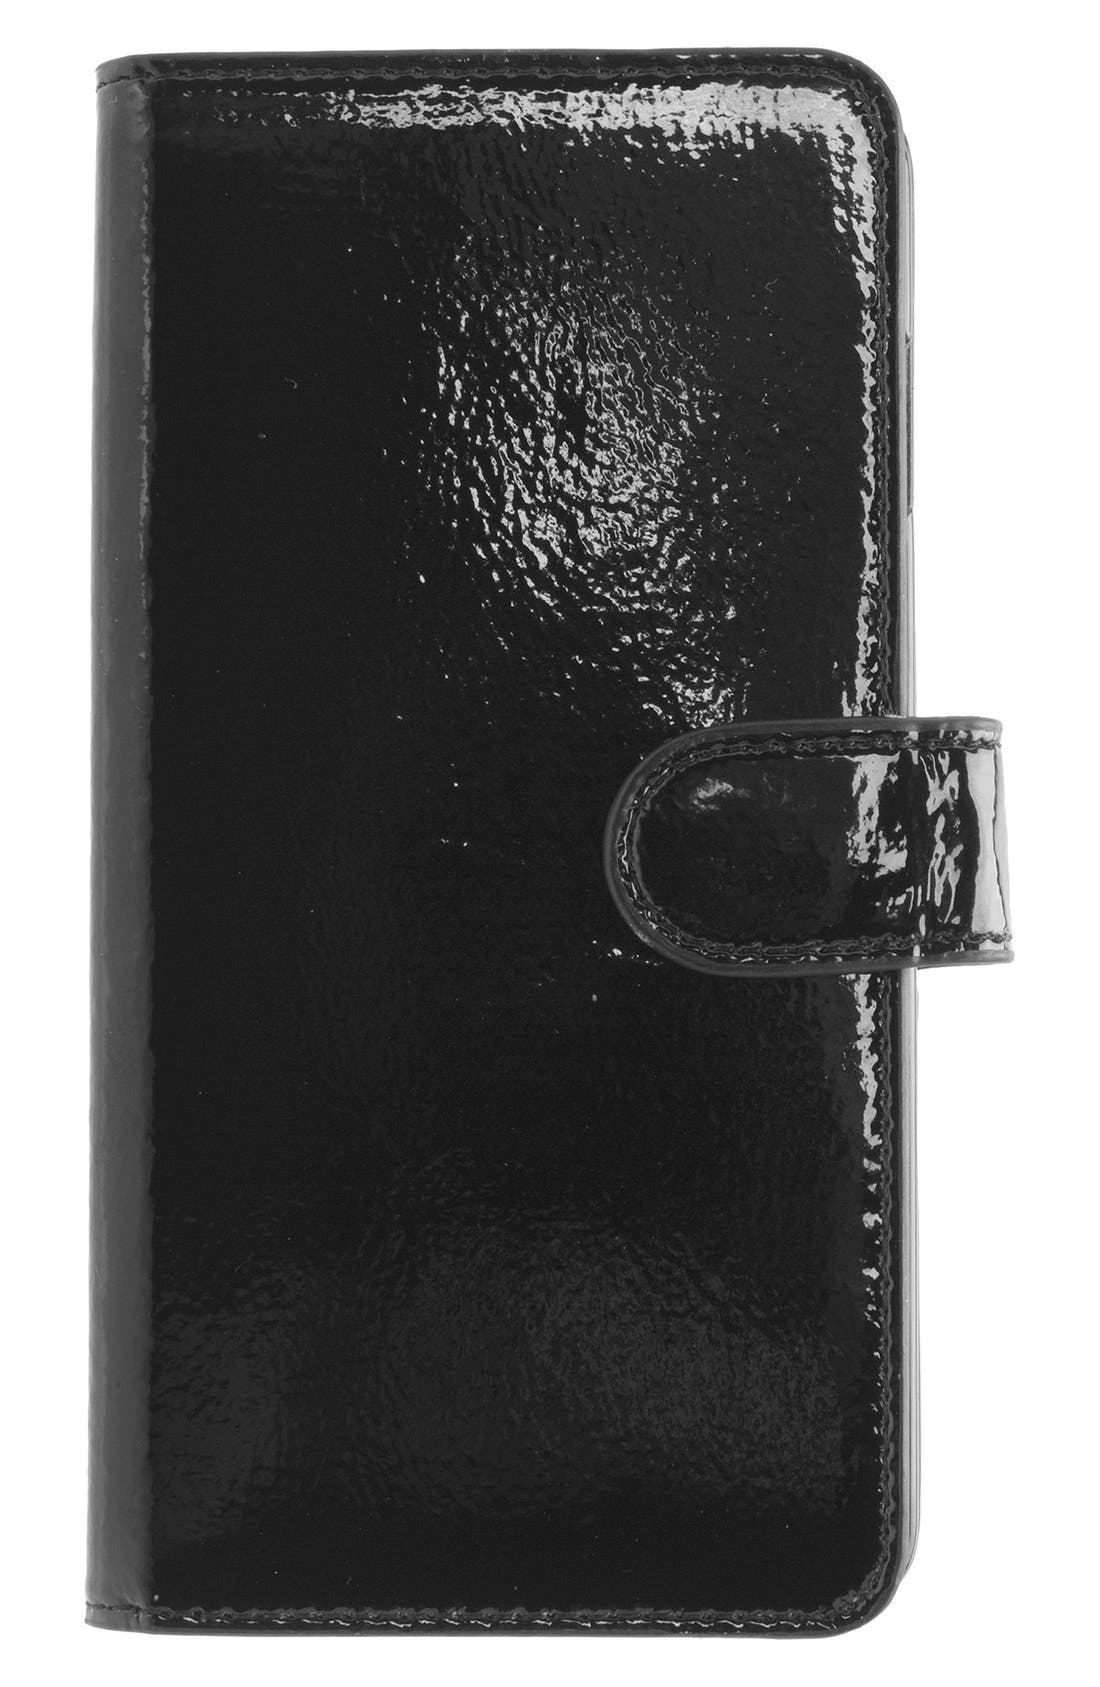 Mobileluxe iPhone 6 Plus Wallet Case